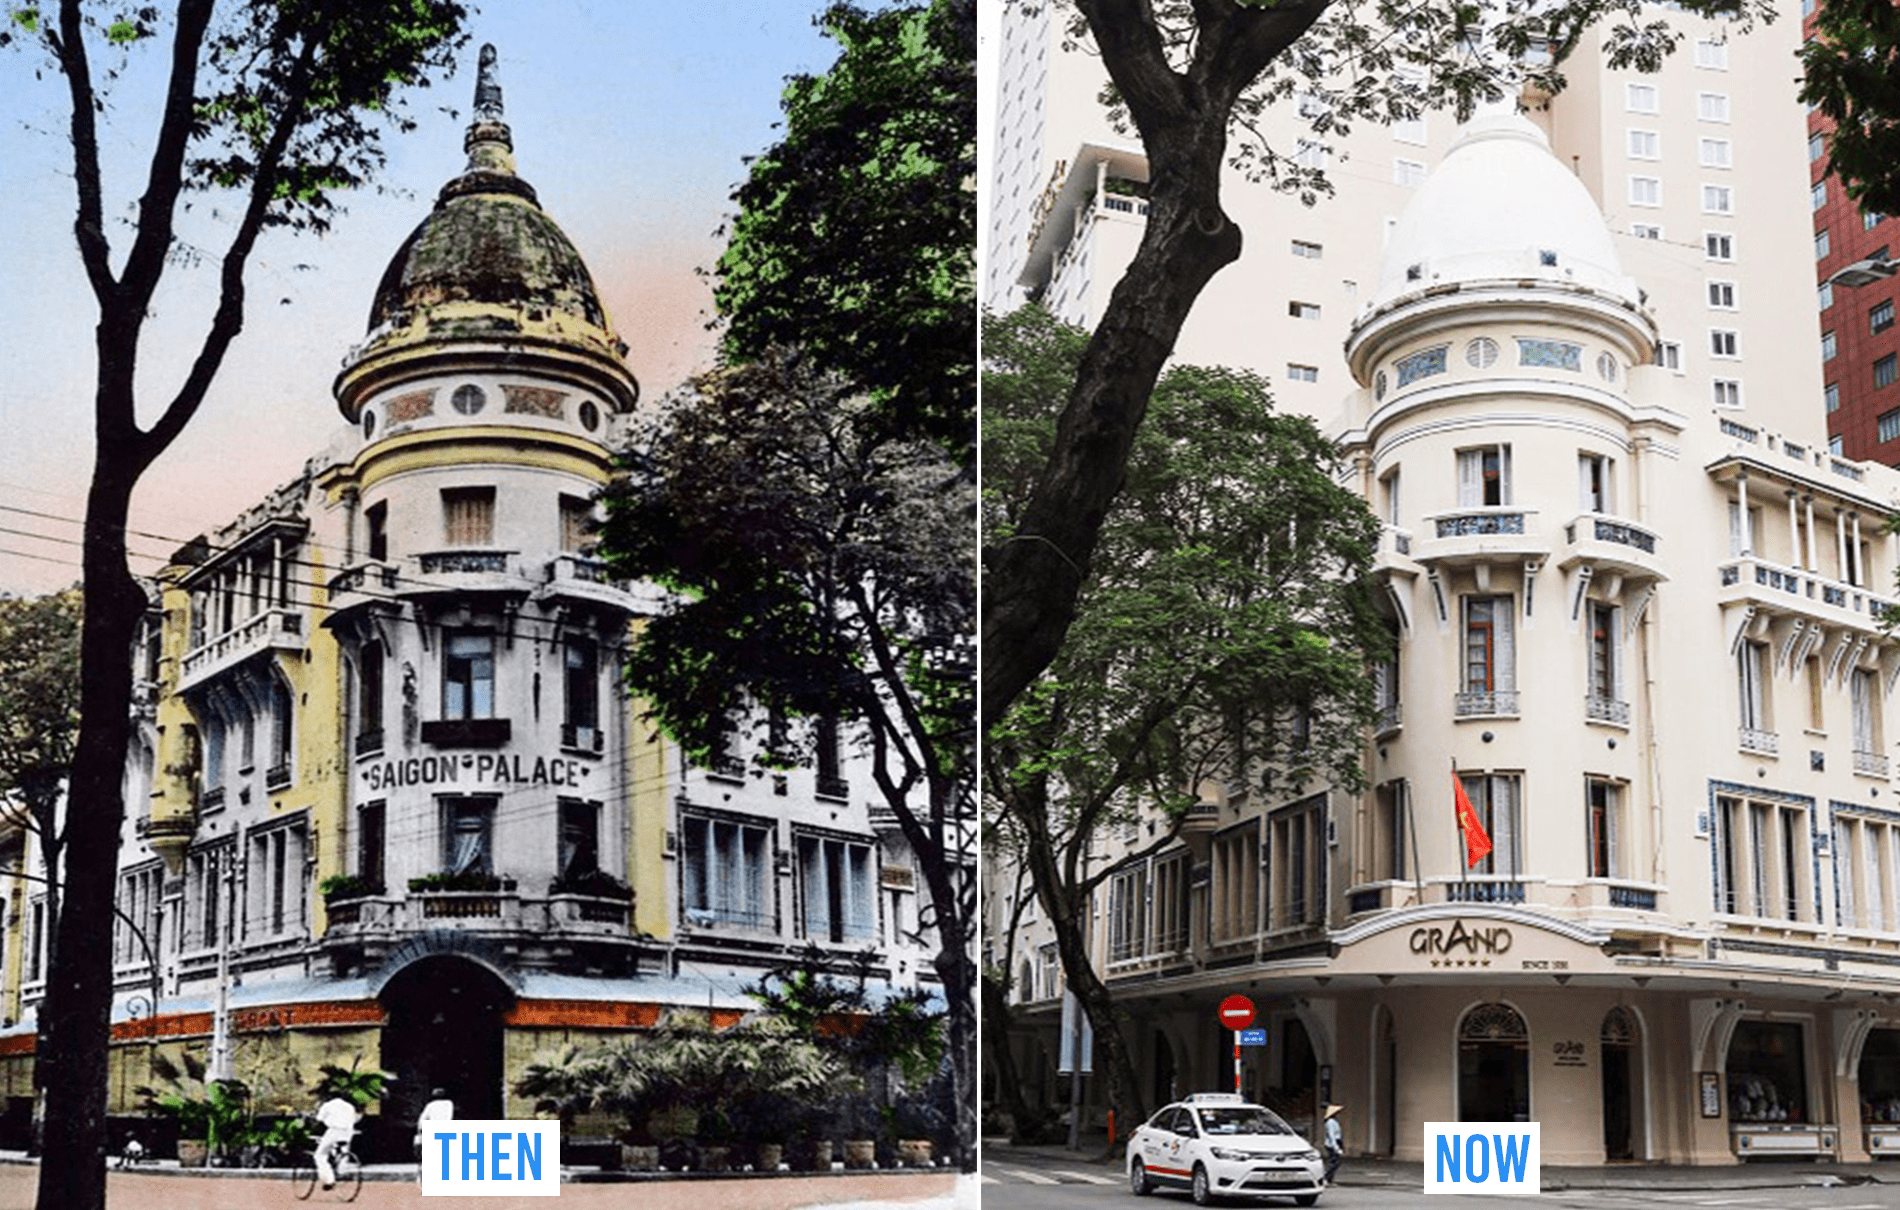 Saigon then and now_the grand hotel